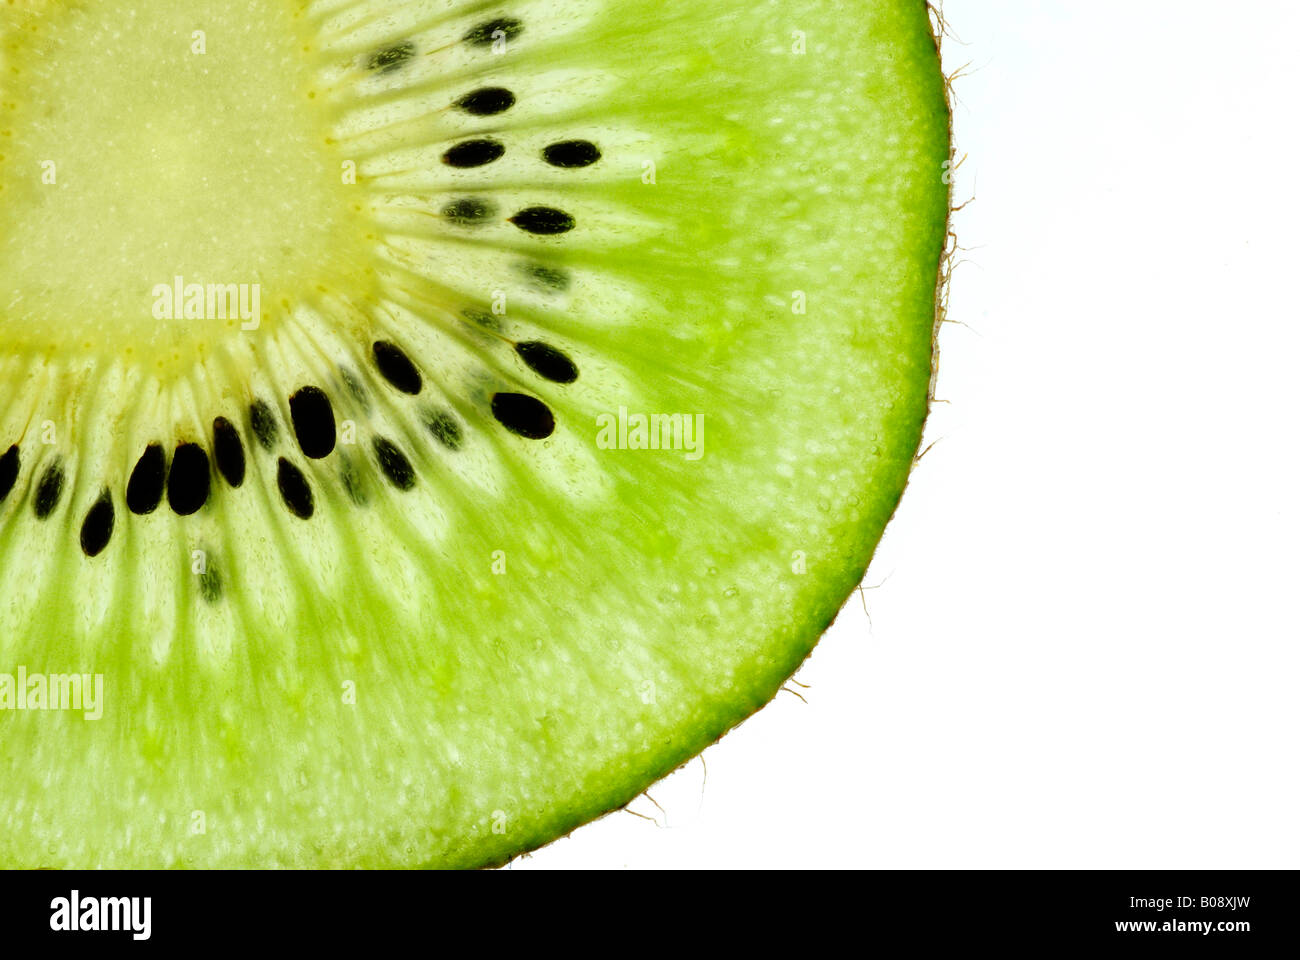 Cross section of a kiwi - Stock Image